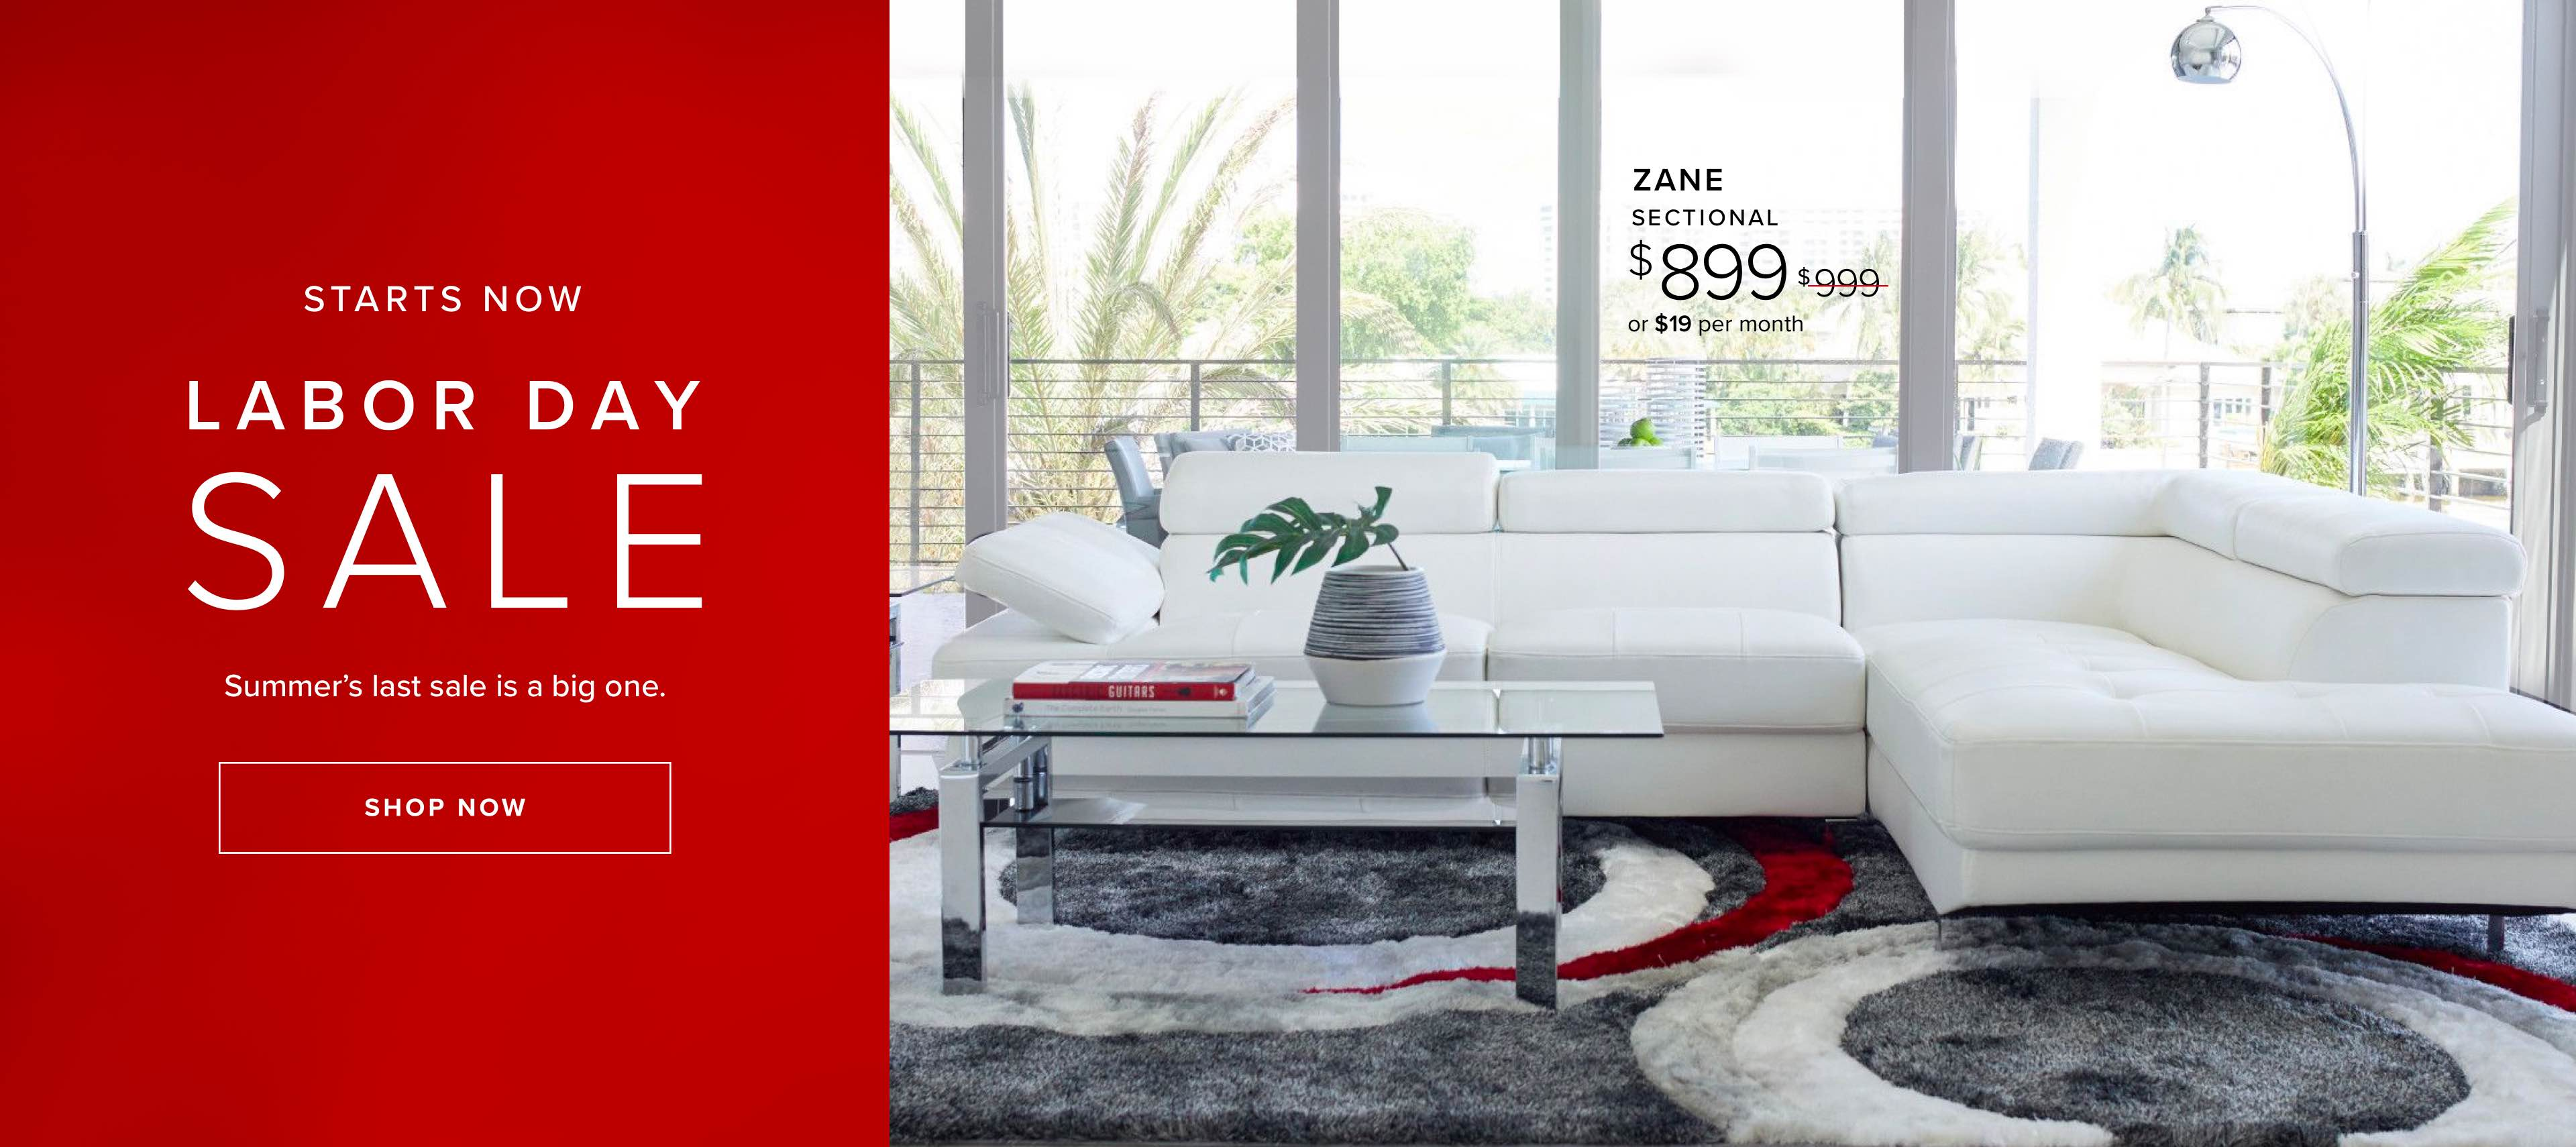 Starts Now, Labor Day Sale. Summer's last sale is a big one. Click to shop. Zane sectional was $999, now $899 or $19 per month.